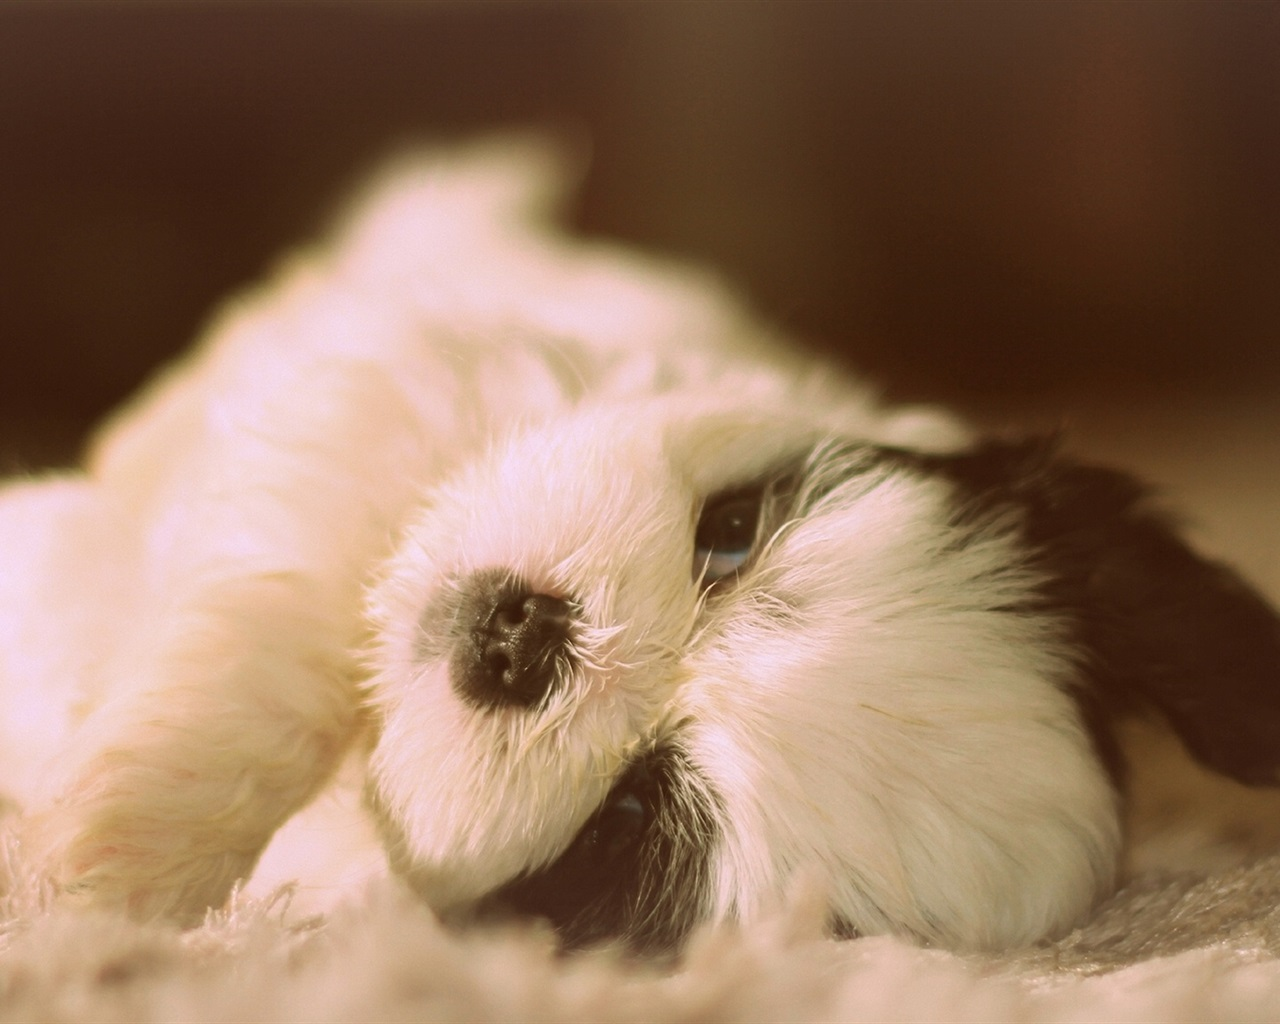 Cute Shih Tzu Dog Lying 640x960 Iphone 4 4s Wallpaper Background Picture Image